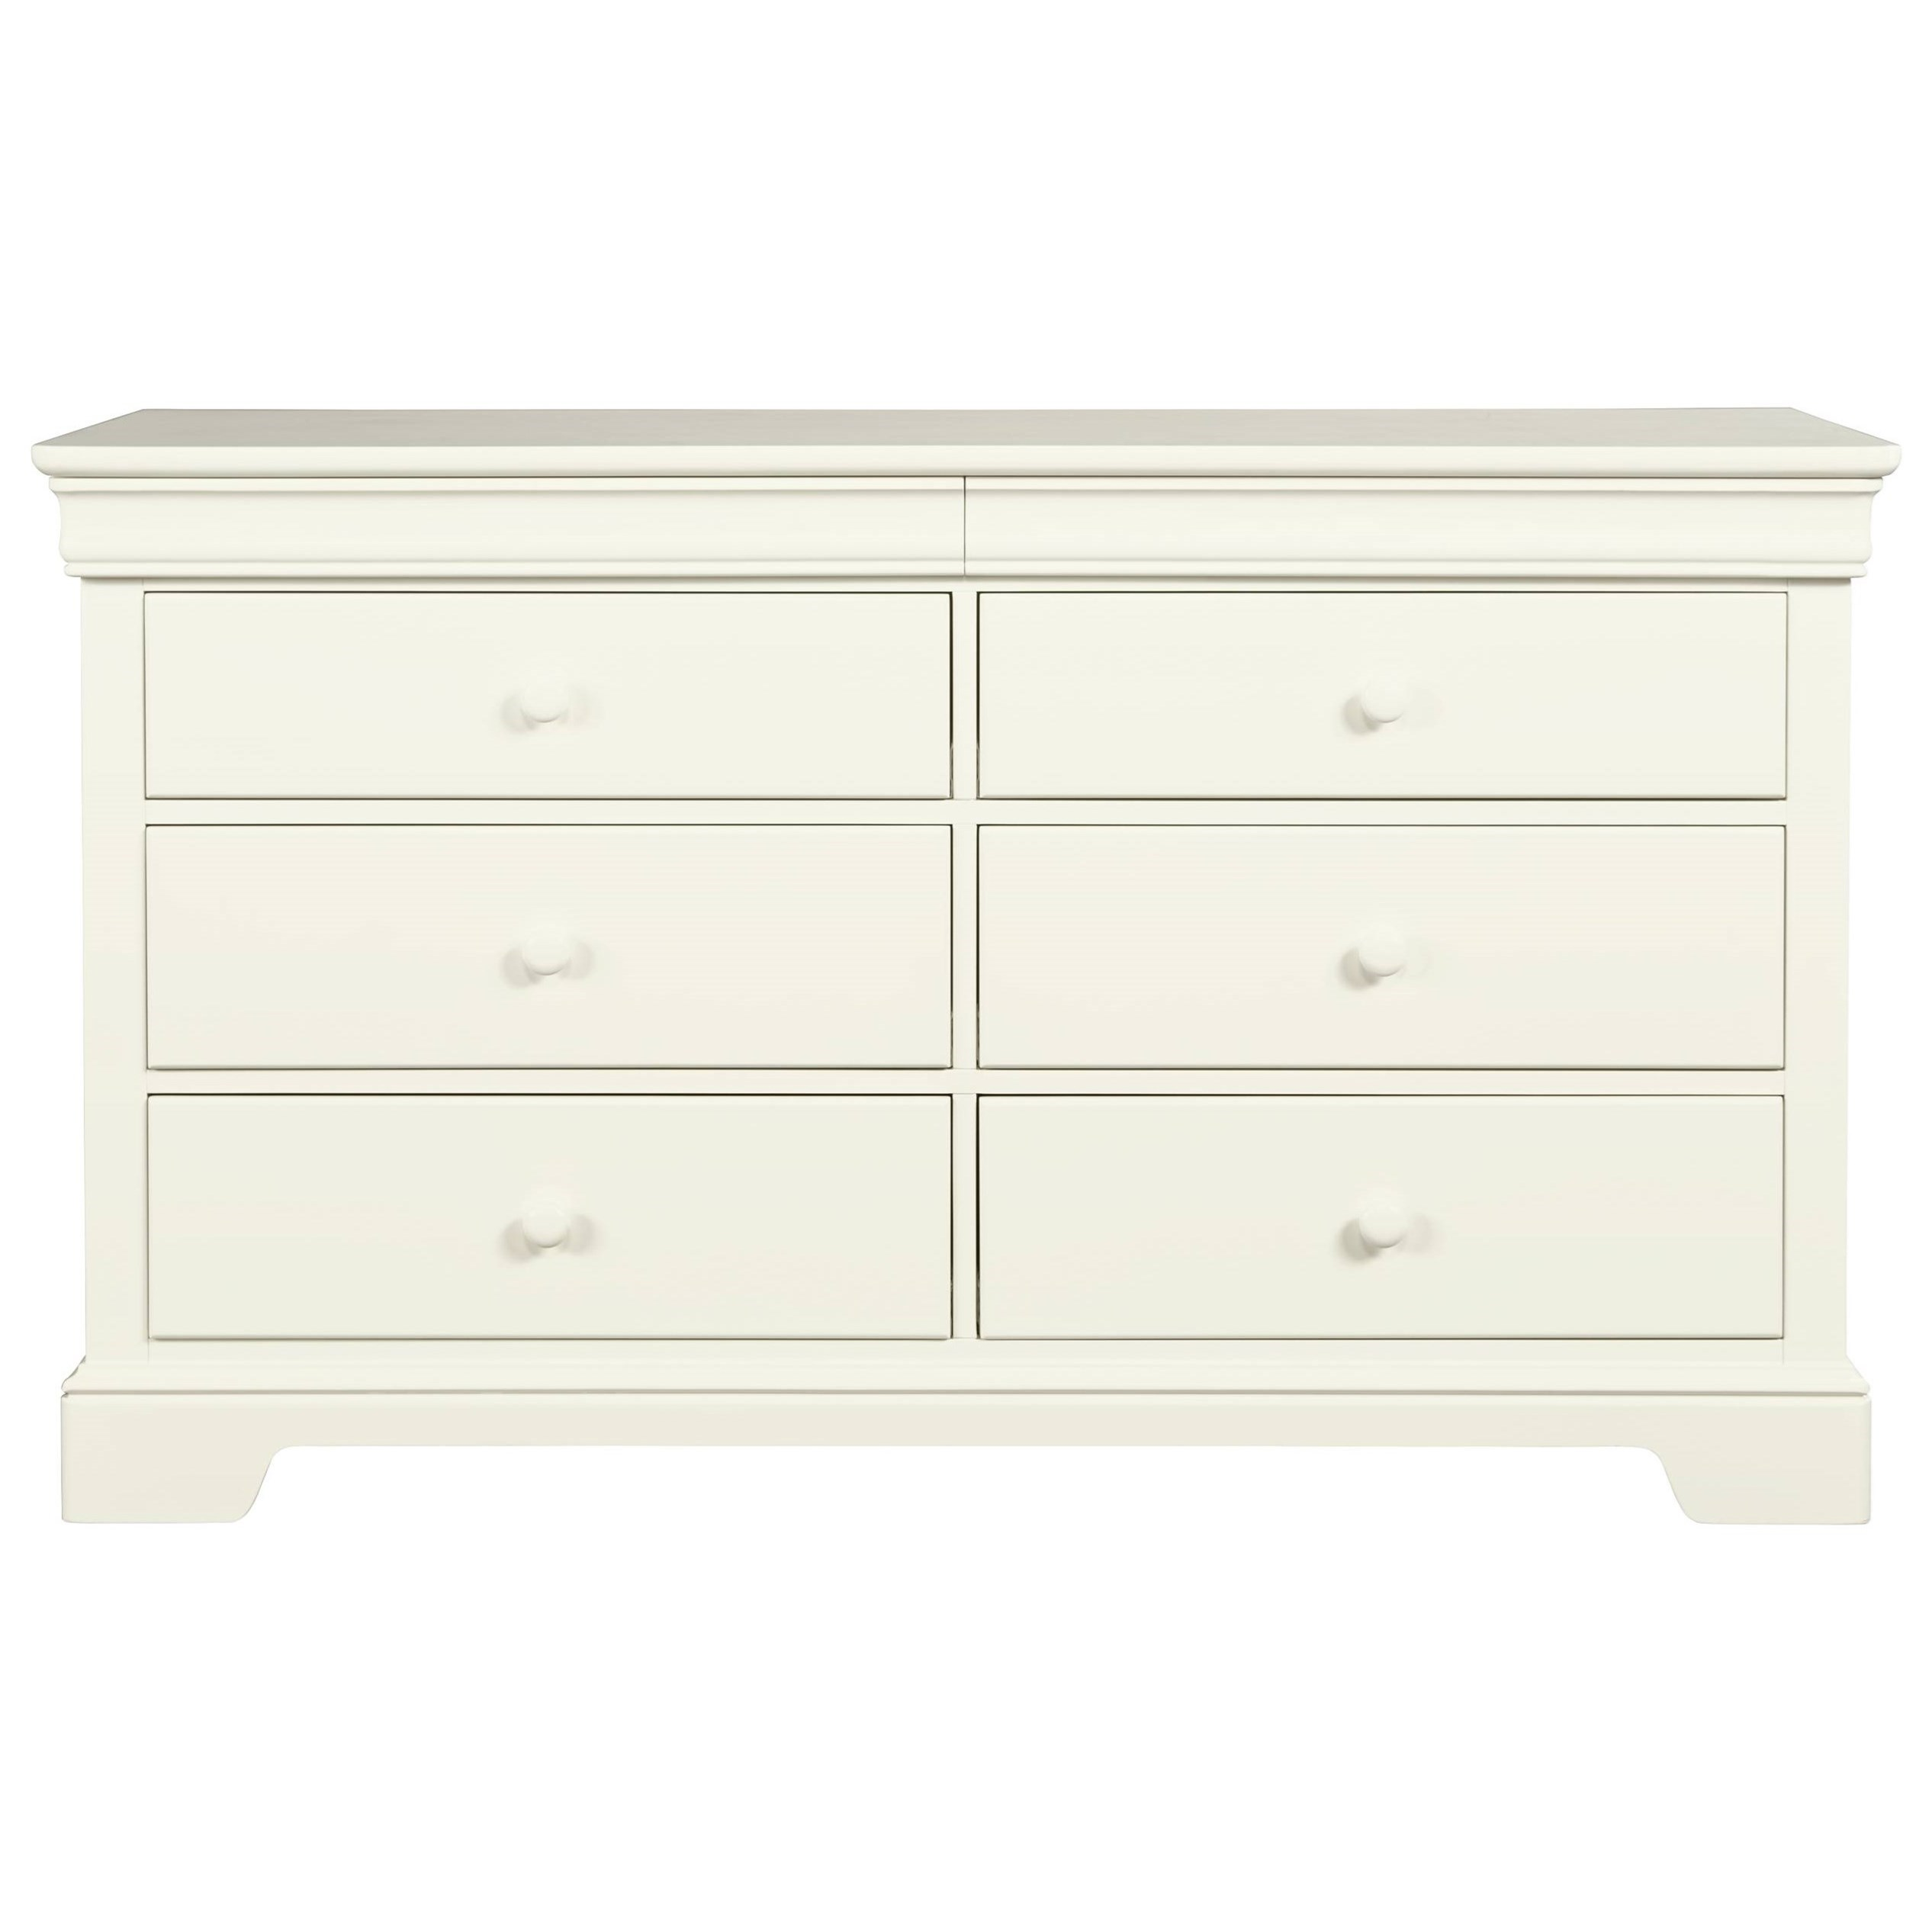 Stone & Leigh Furniture Teaberry Lane Dresser - Item Number: 575-23-02